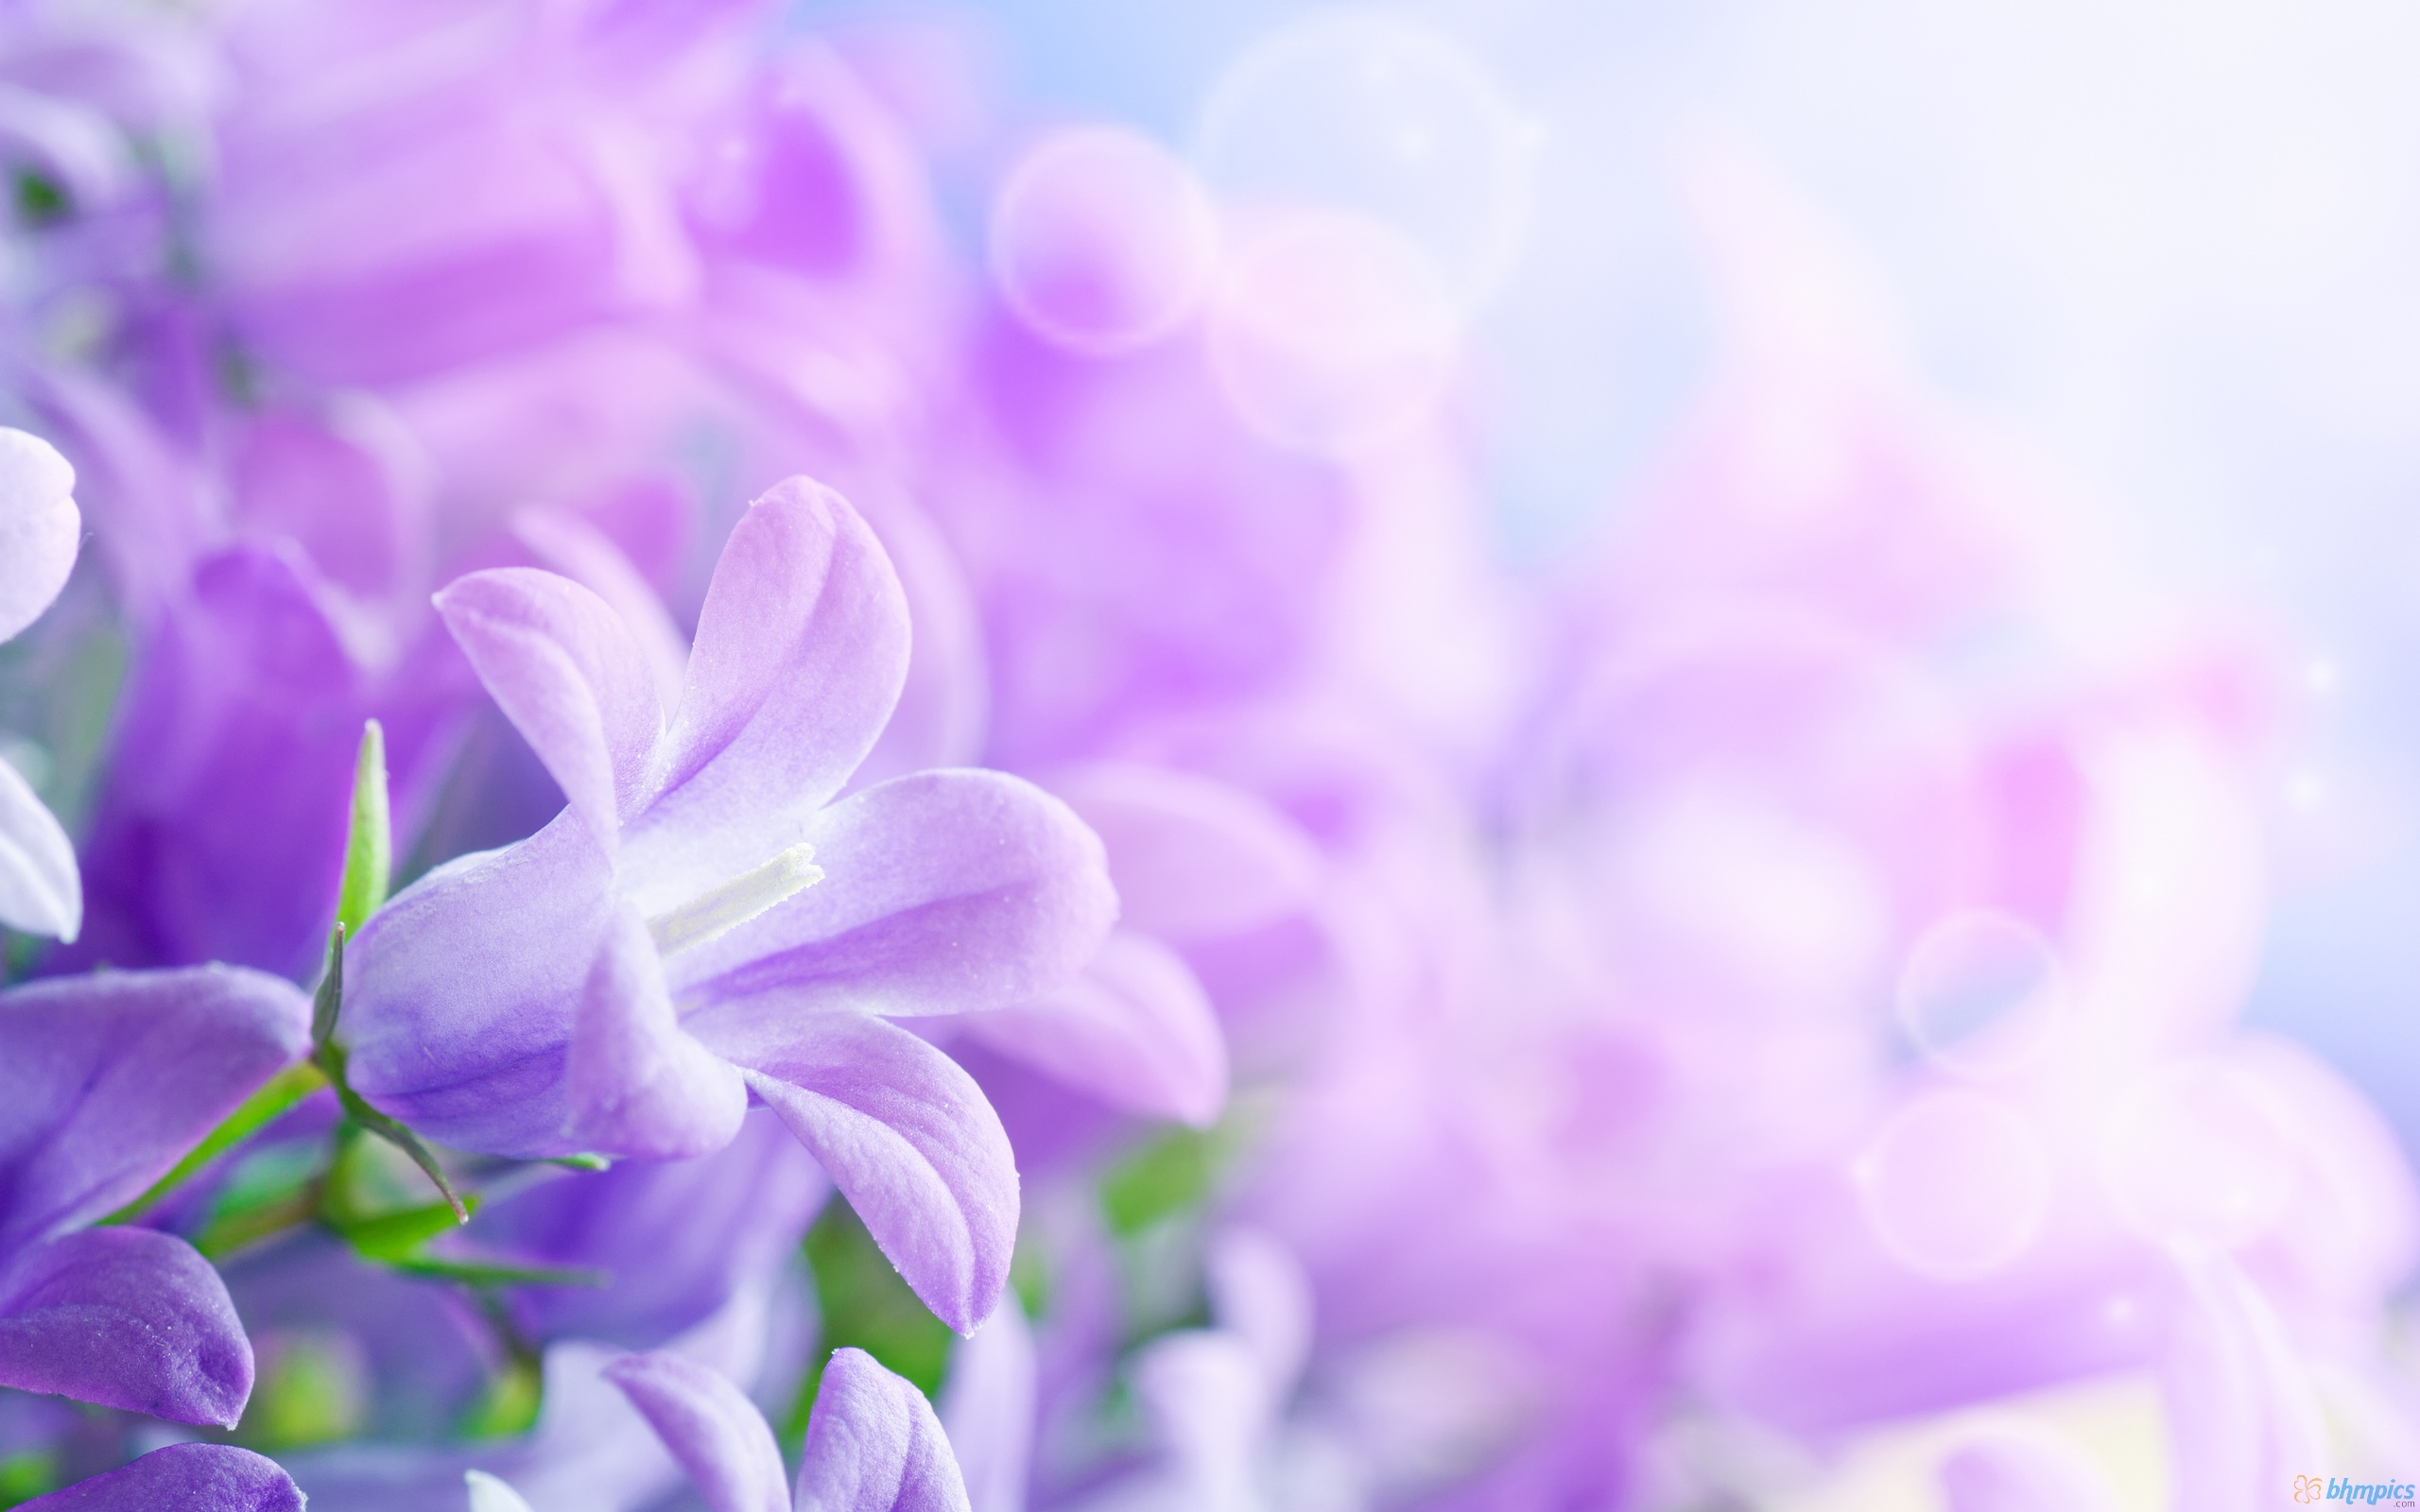 Nature Flowers Bellflower Wallpaper ImageBankbiz 2560x1600